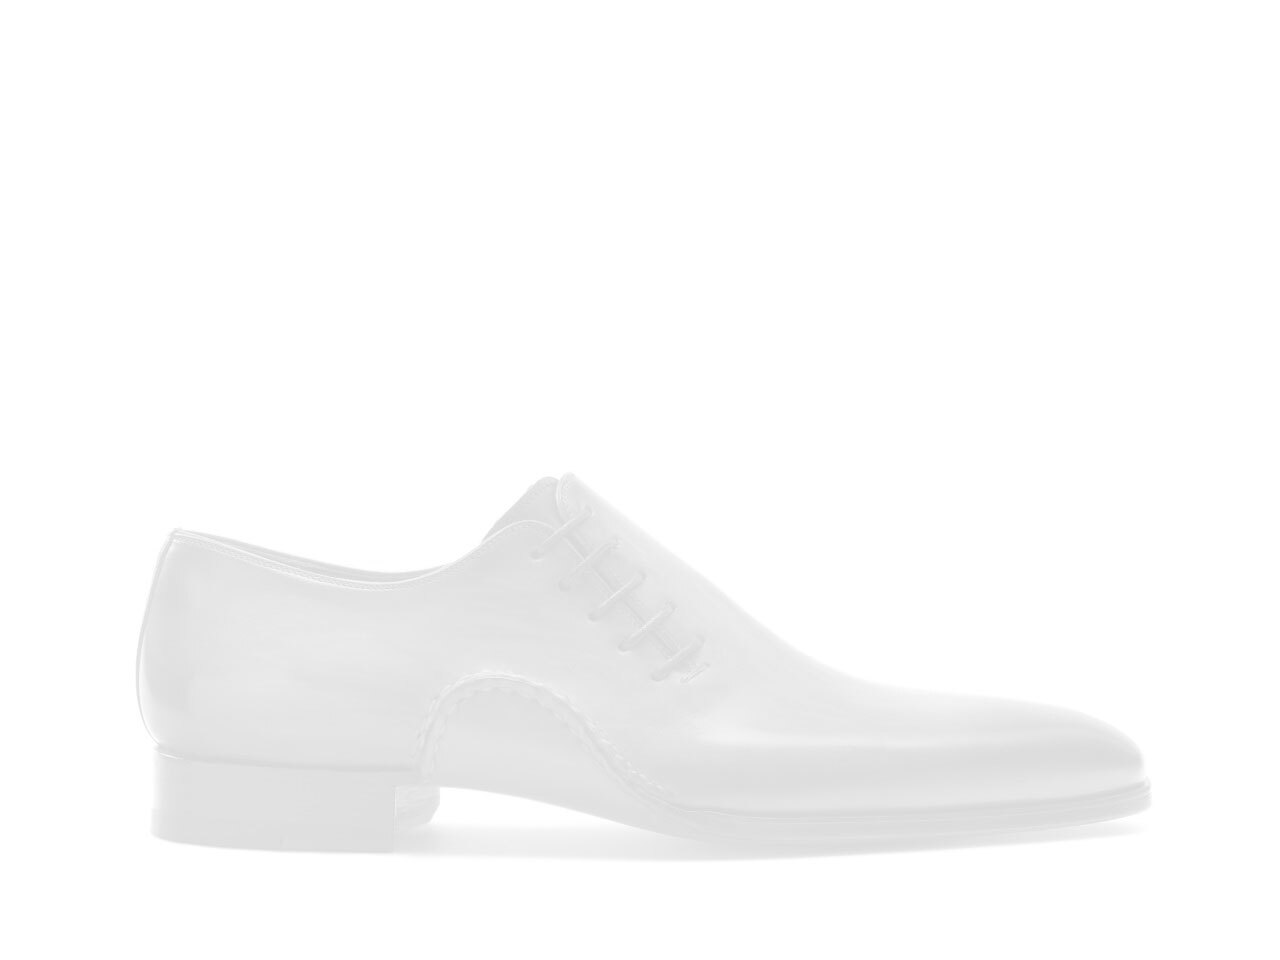 Sole of the Magnanni Reina II White and Grey Men's Sneakers